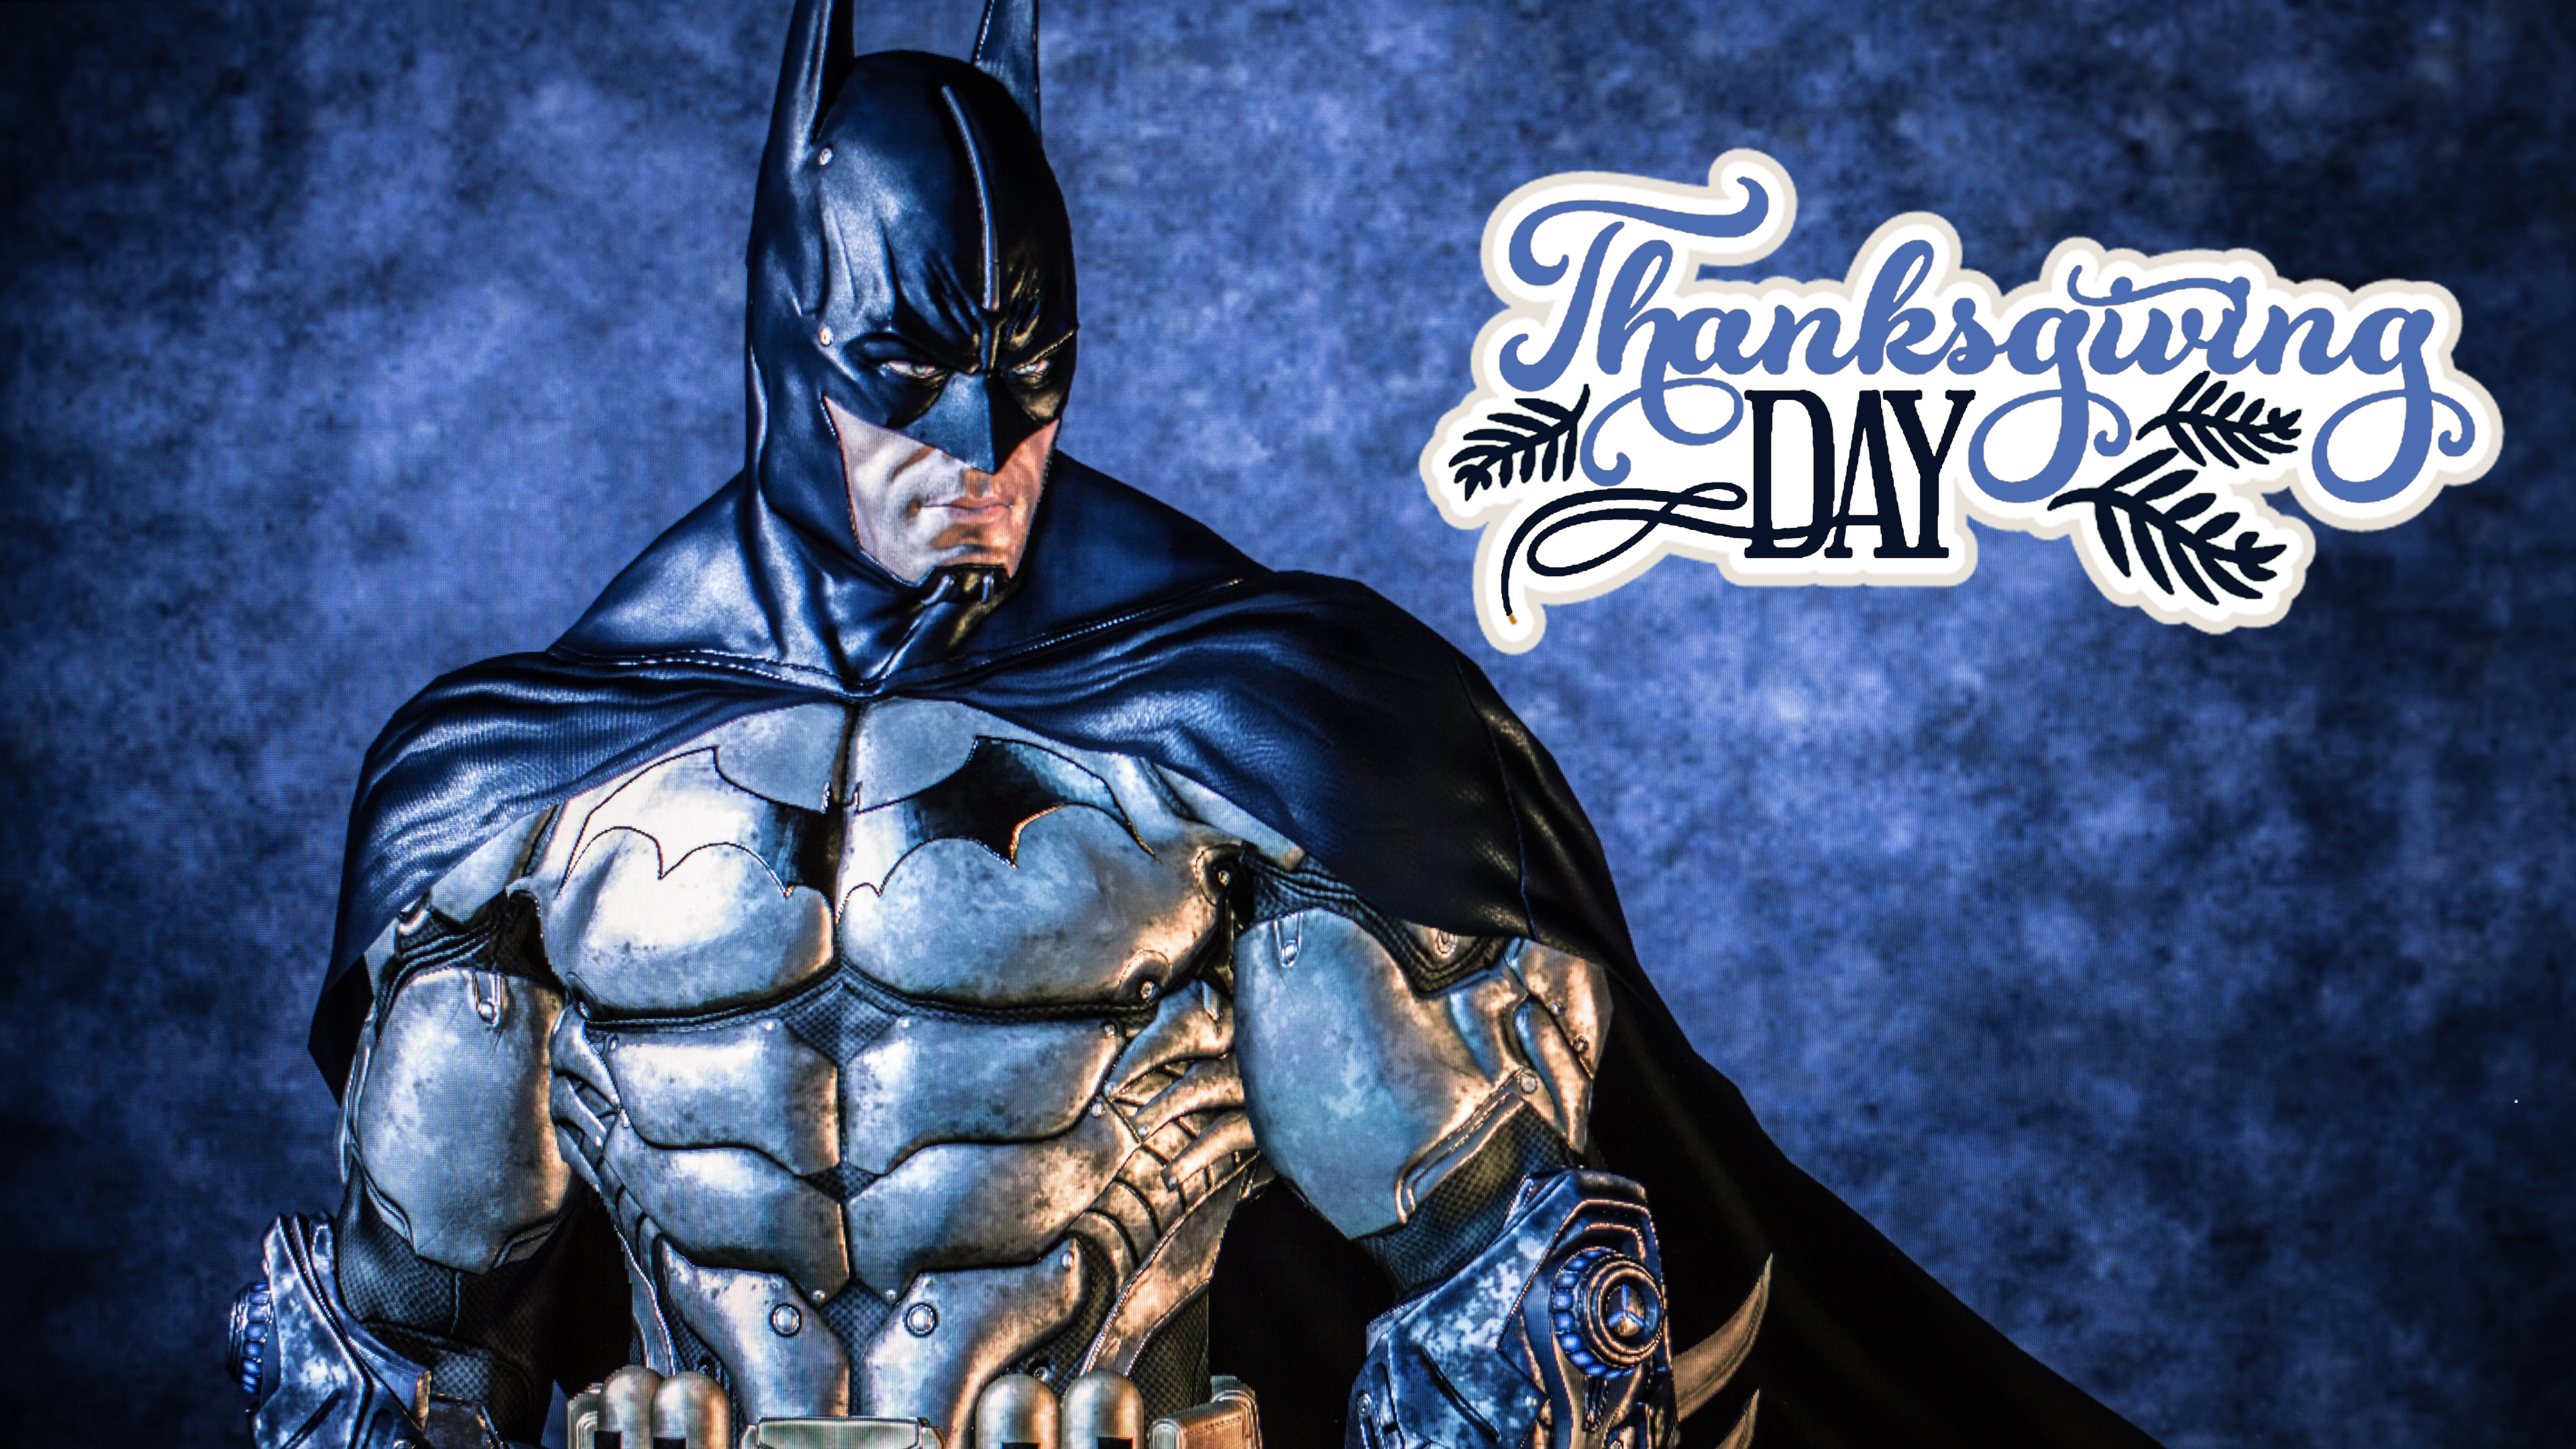 batman wishing happy thanksgiving day ultra hd wallpaper